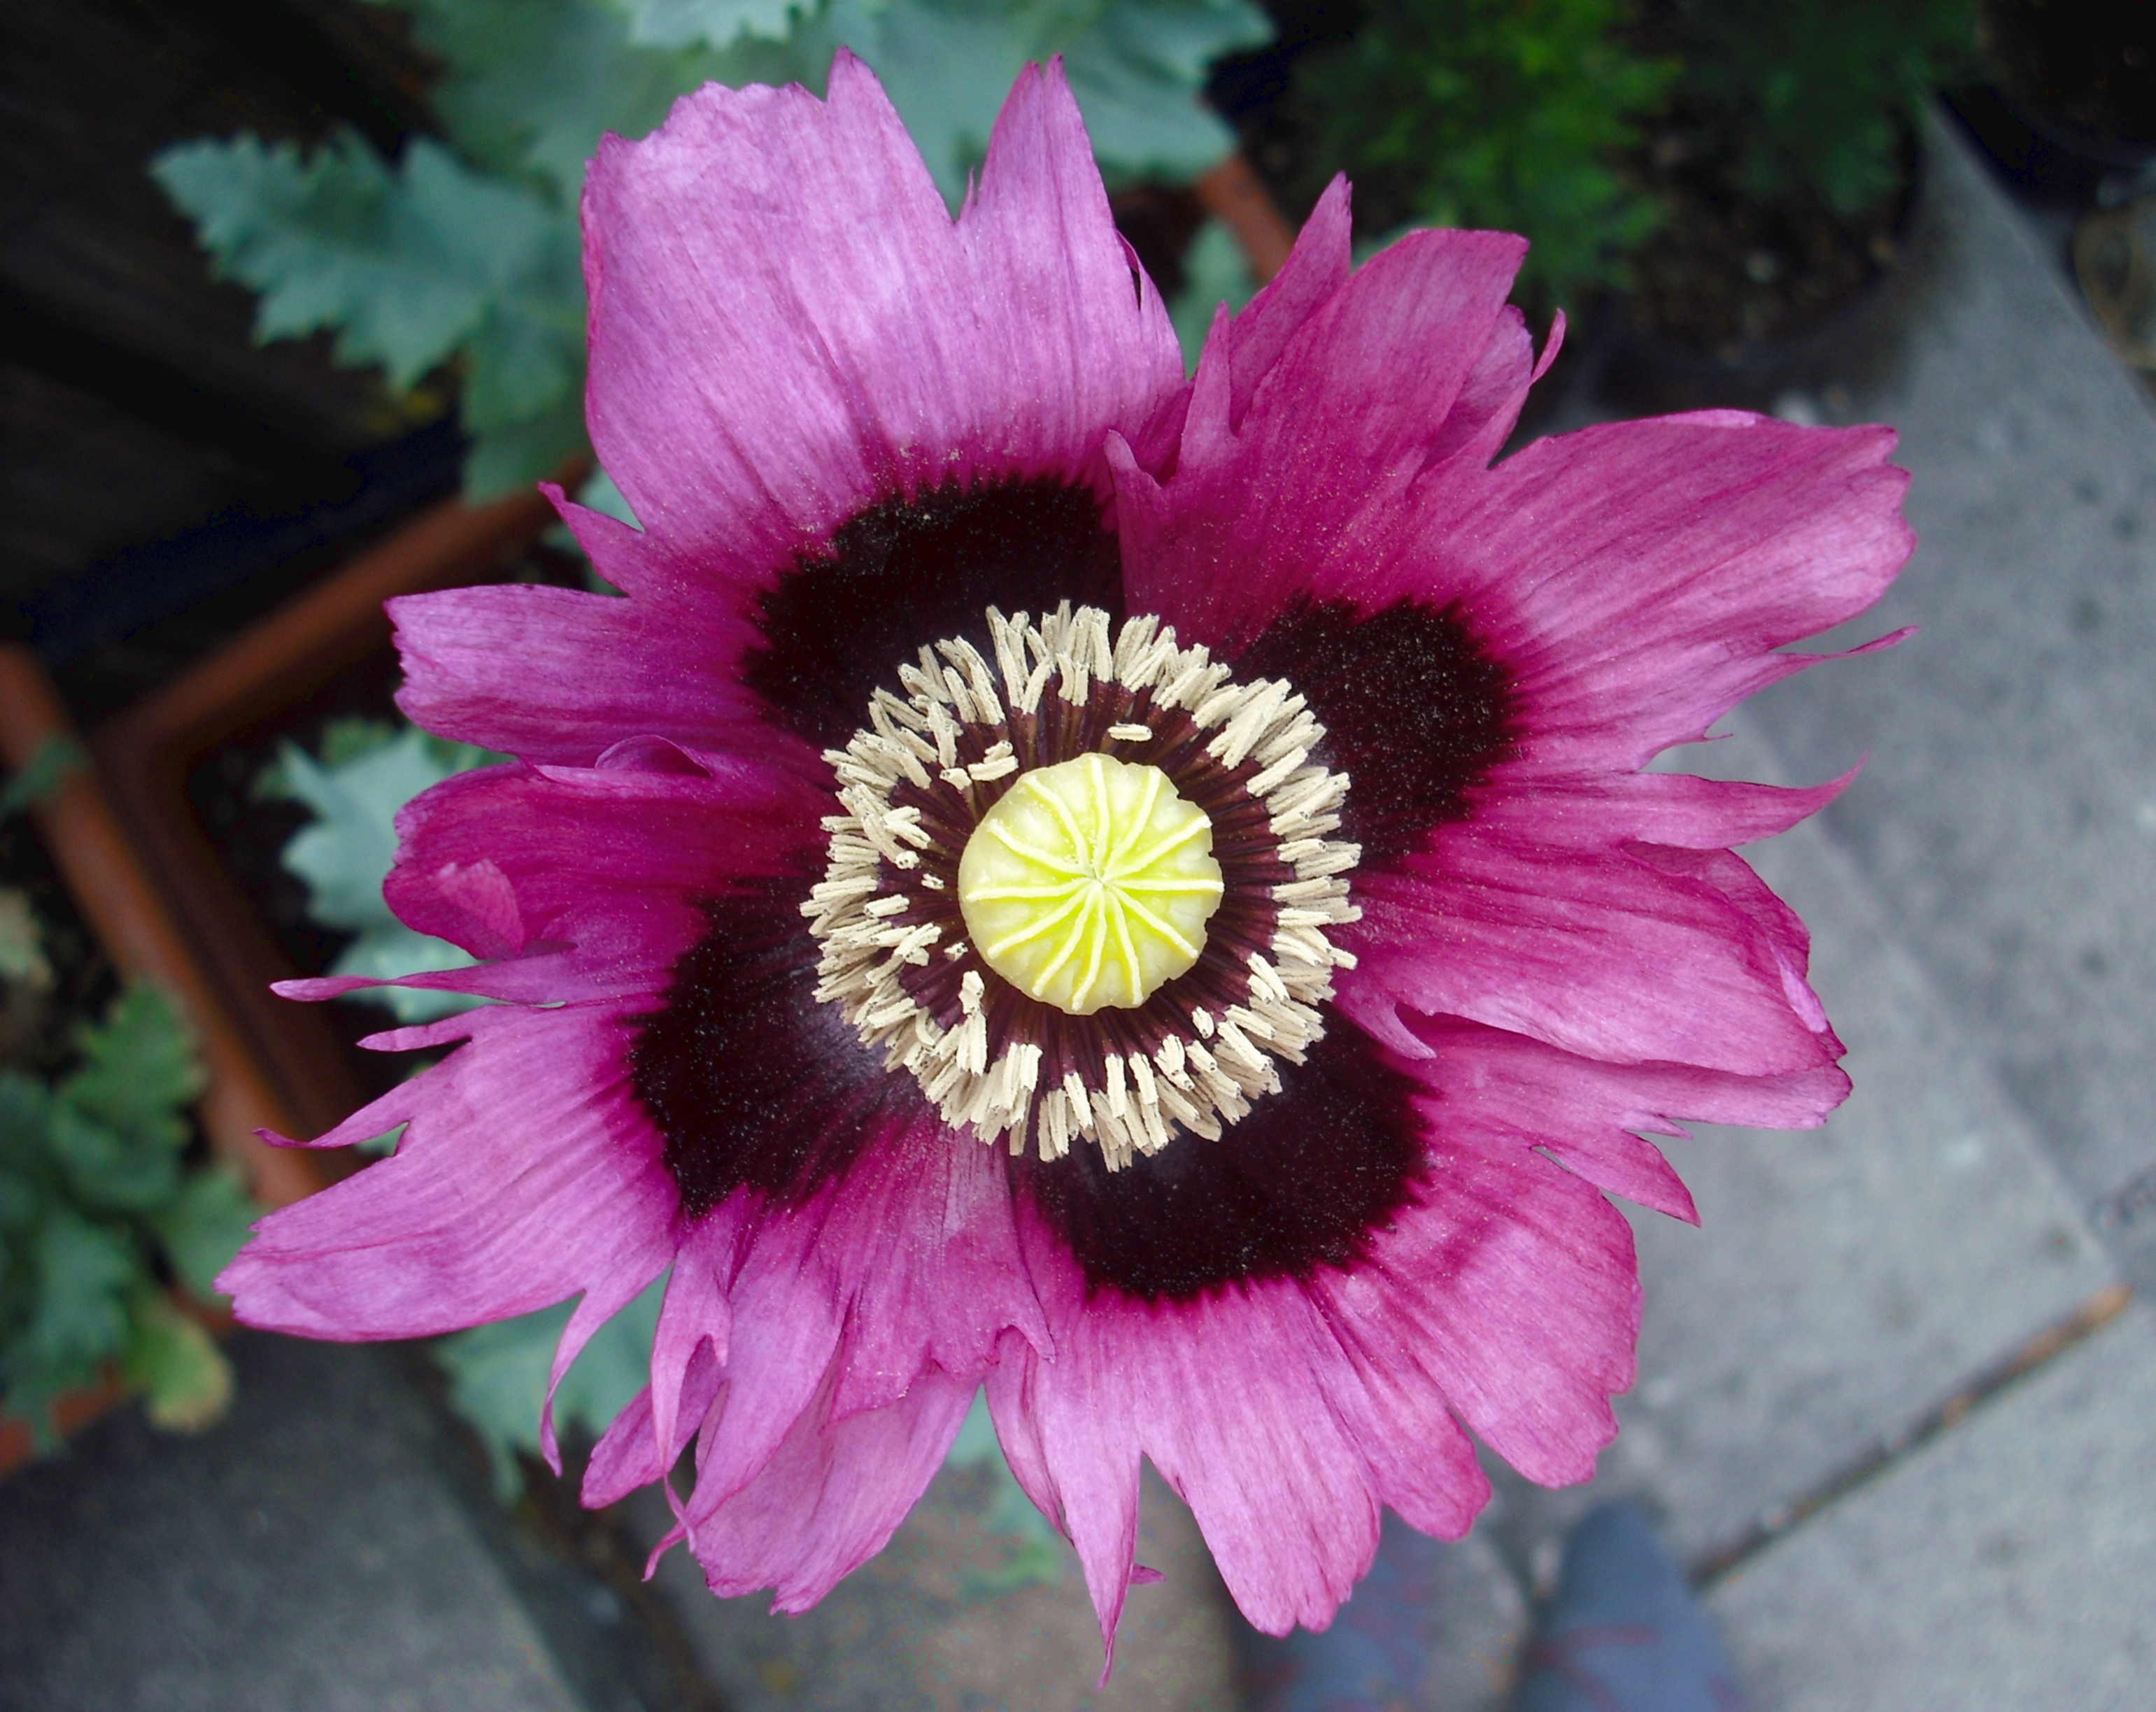 Filepurple opium poppy flowerg wikimedia commons filepurple opium poppy flowerg mightylinksfo